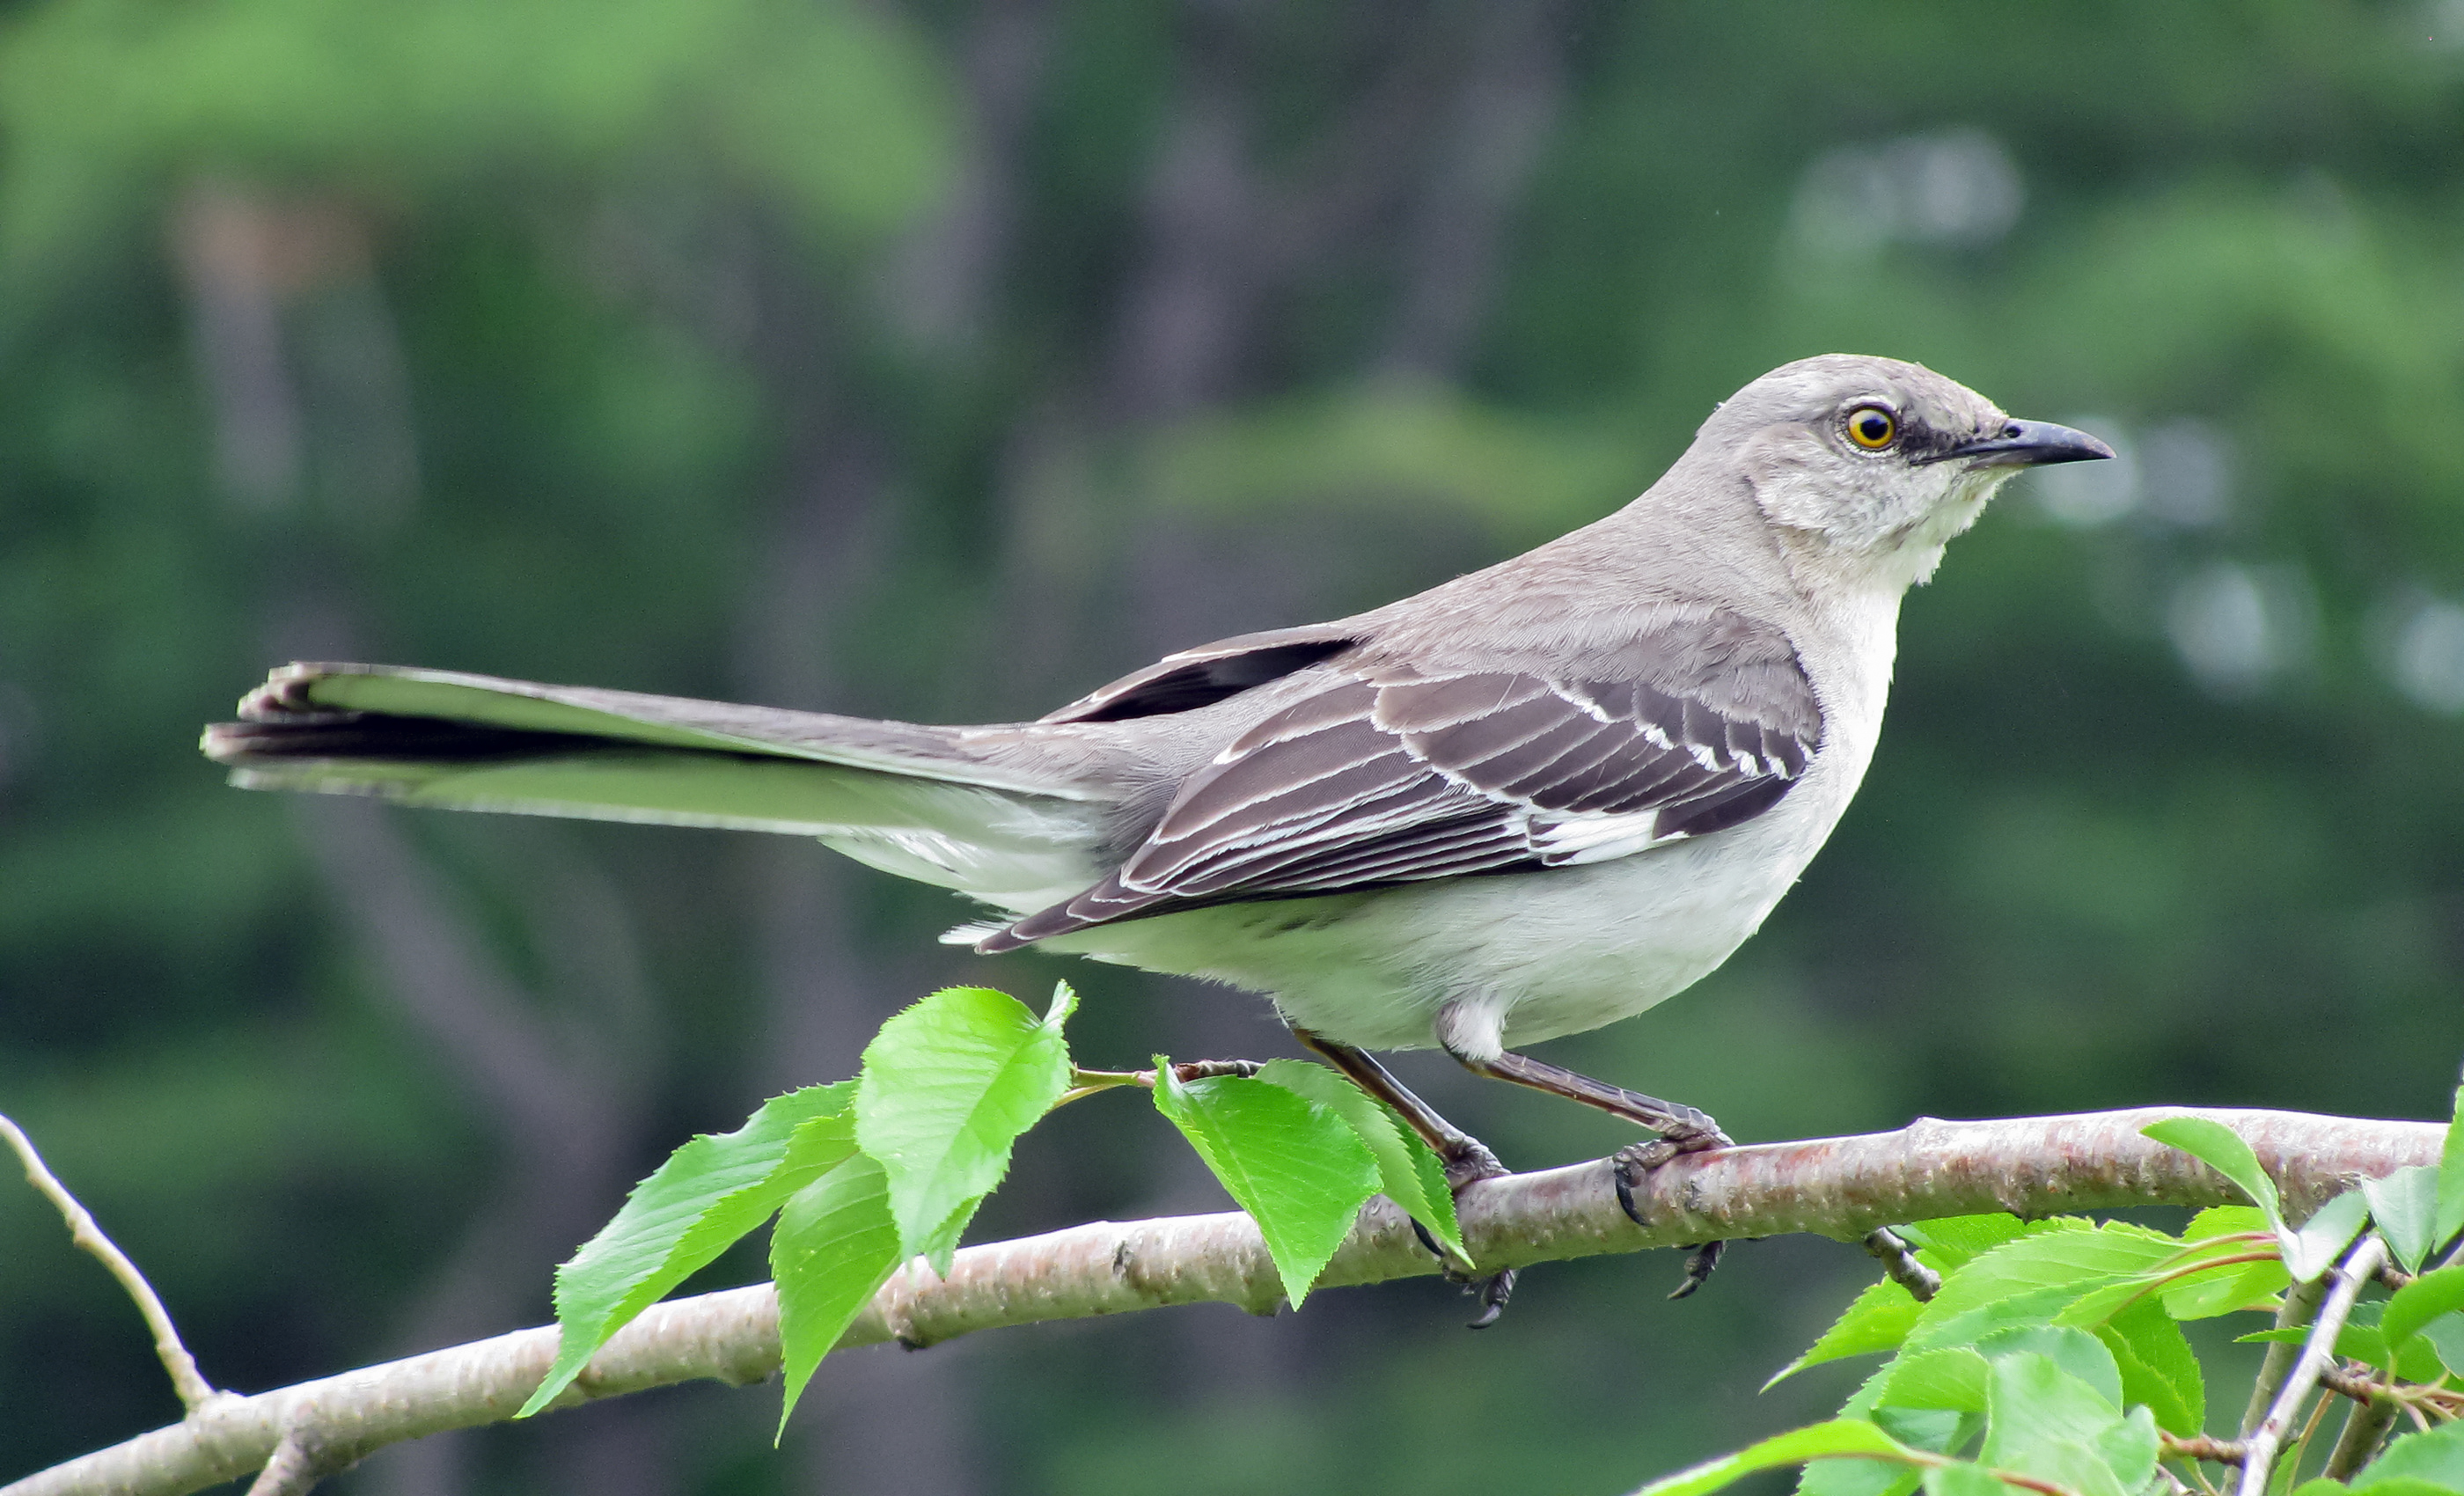 Northern mockingbird - Wikipedia